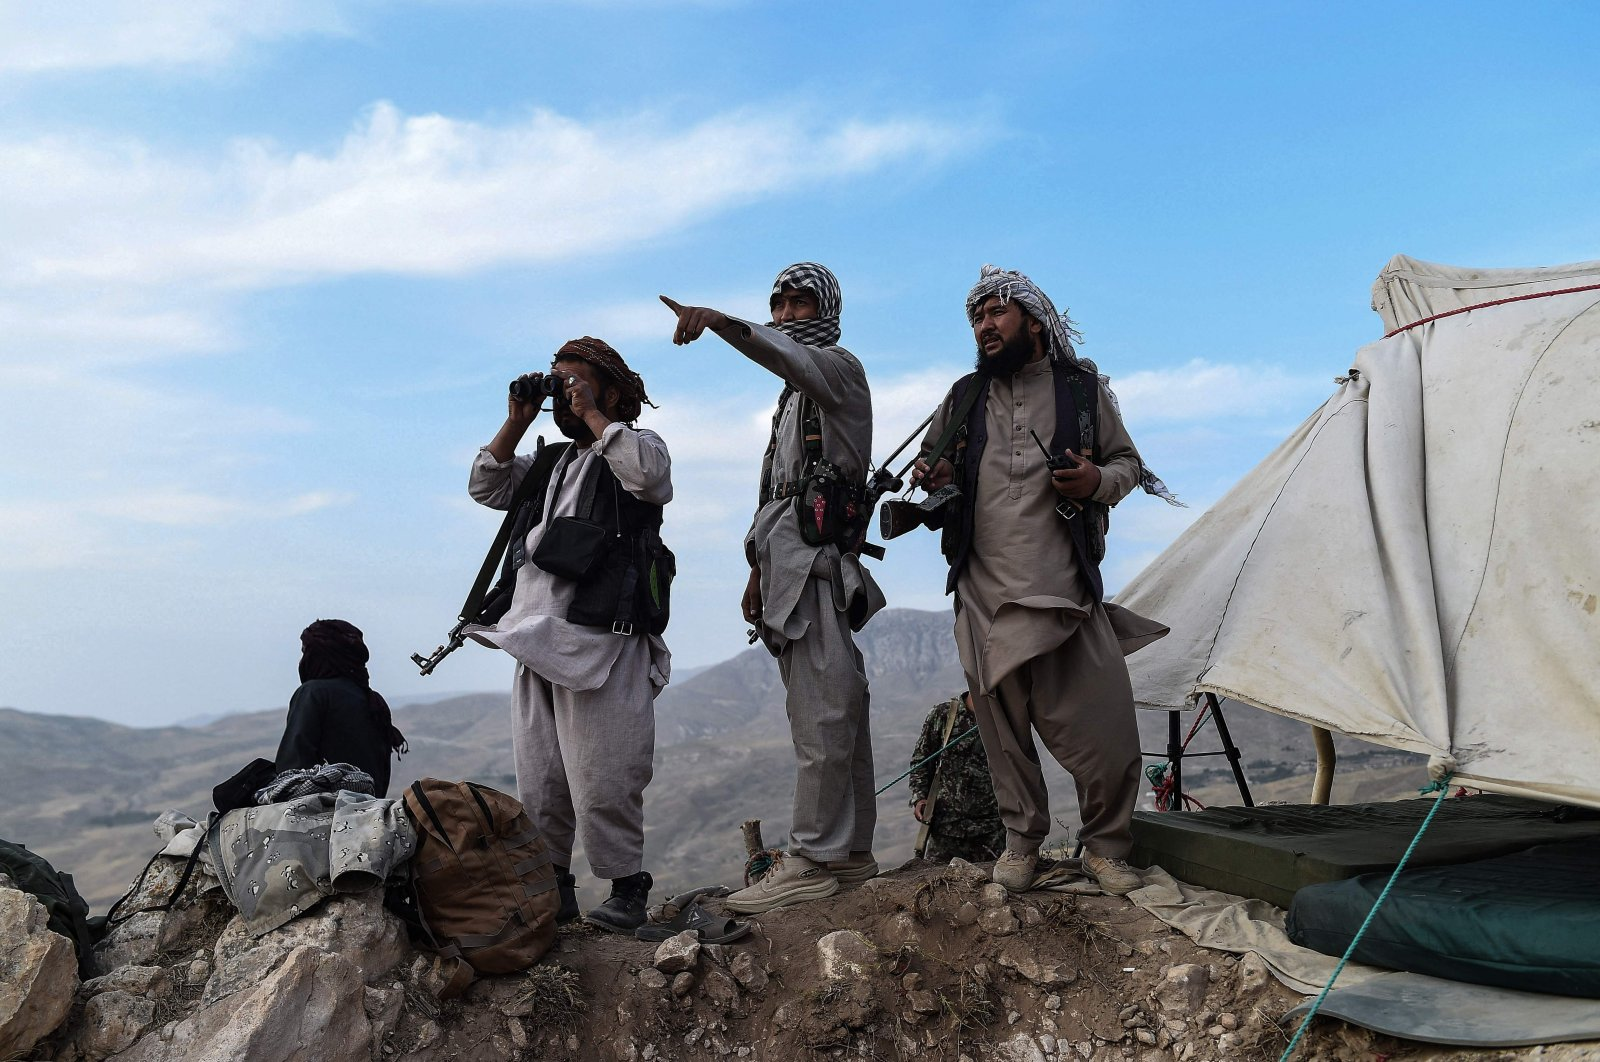 Afghan militia fighters keep a watch at an outpost against Taliban insurgents at Charkint district in Balkh Province, Afghanistan, July 15, 2021. (AFP Photo)